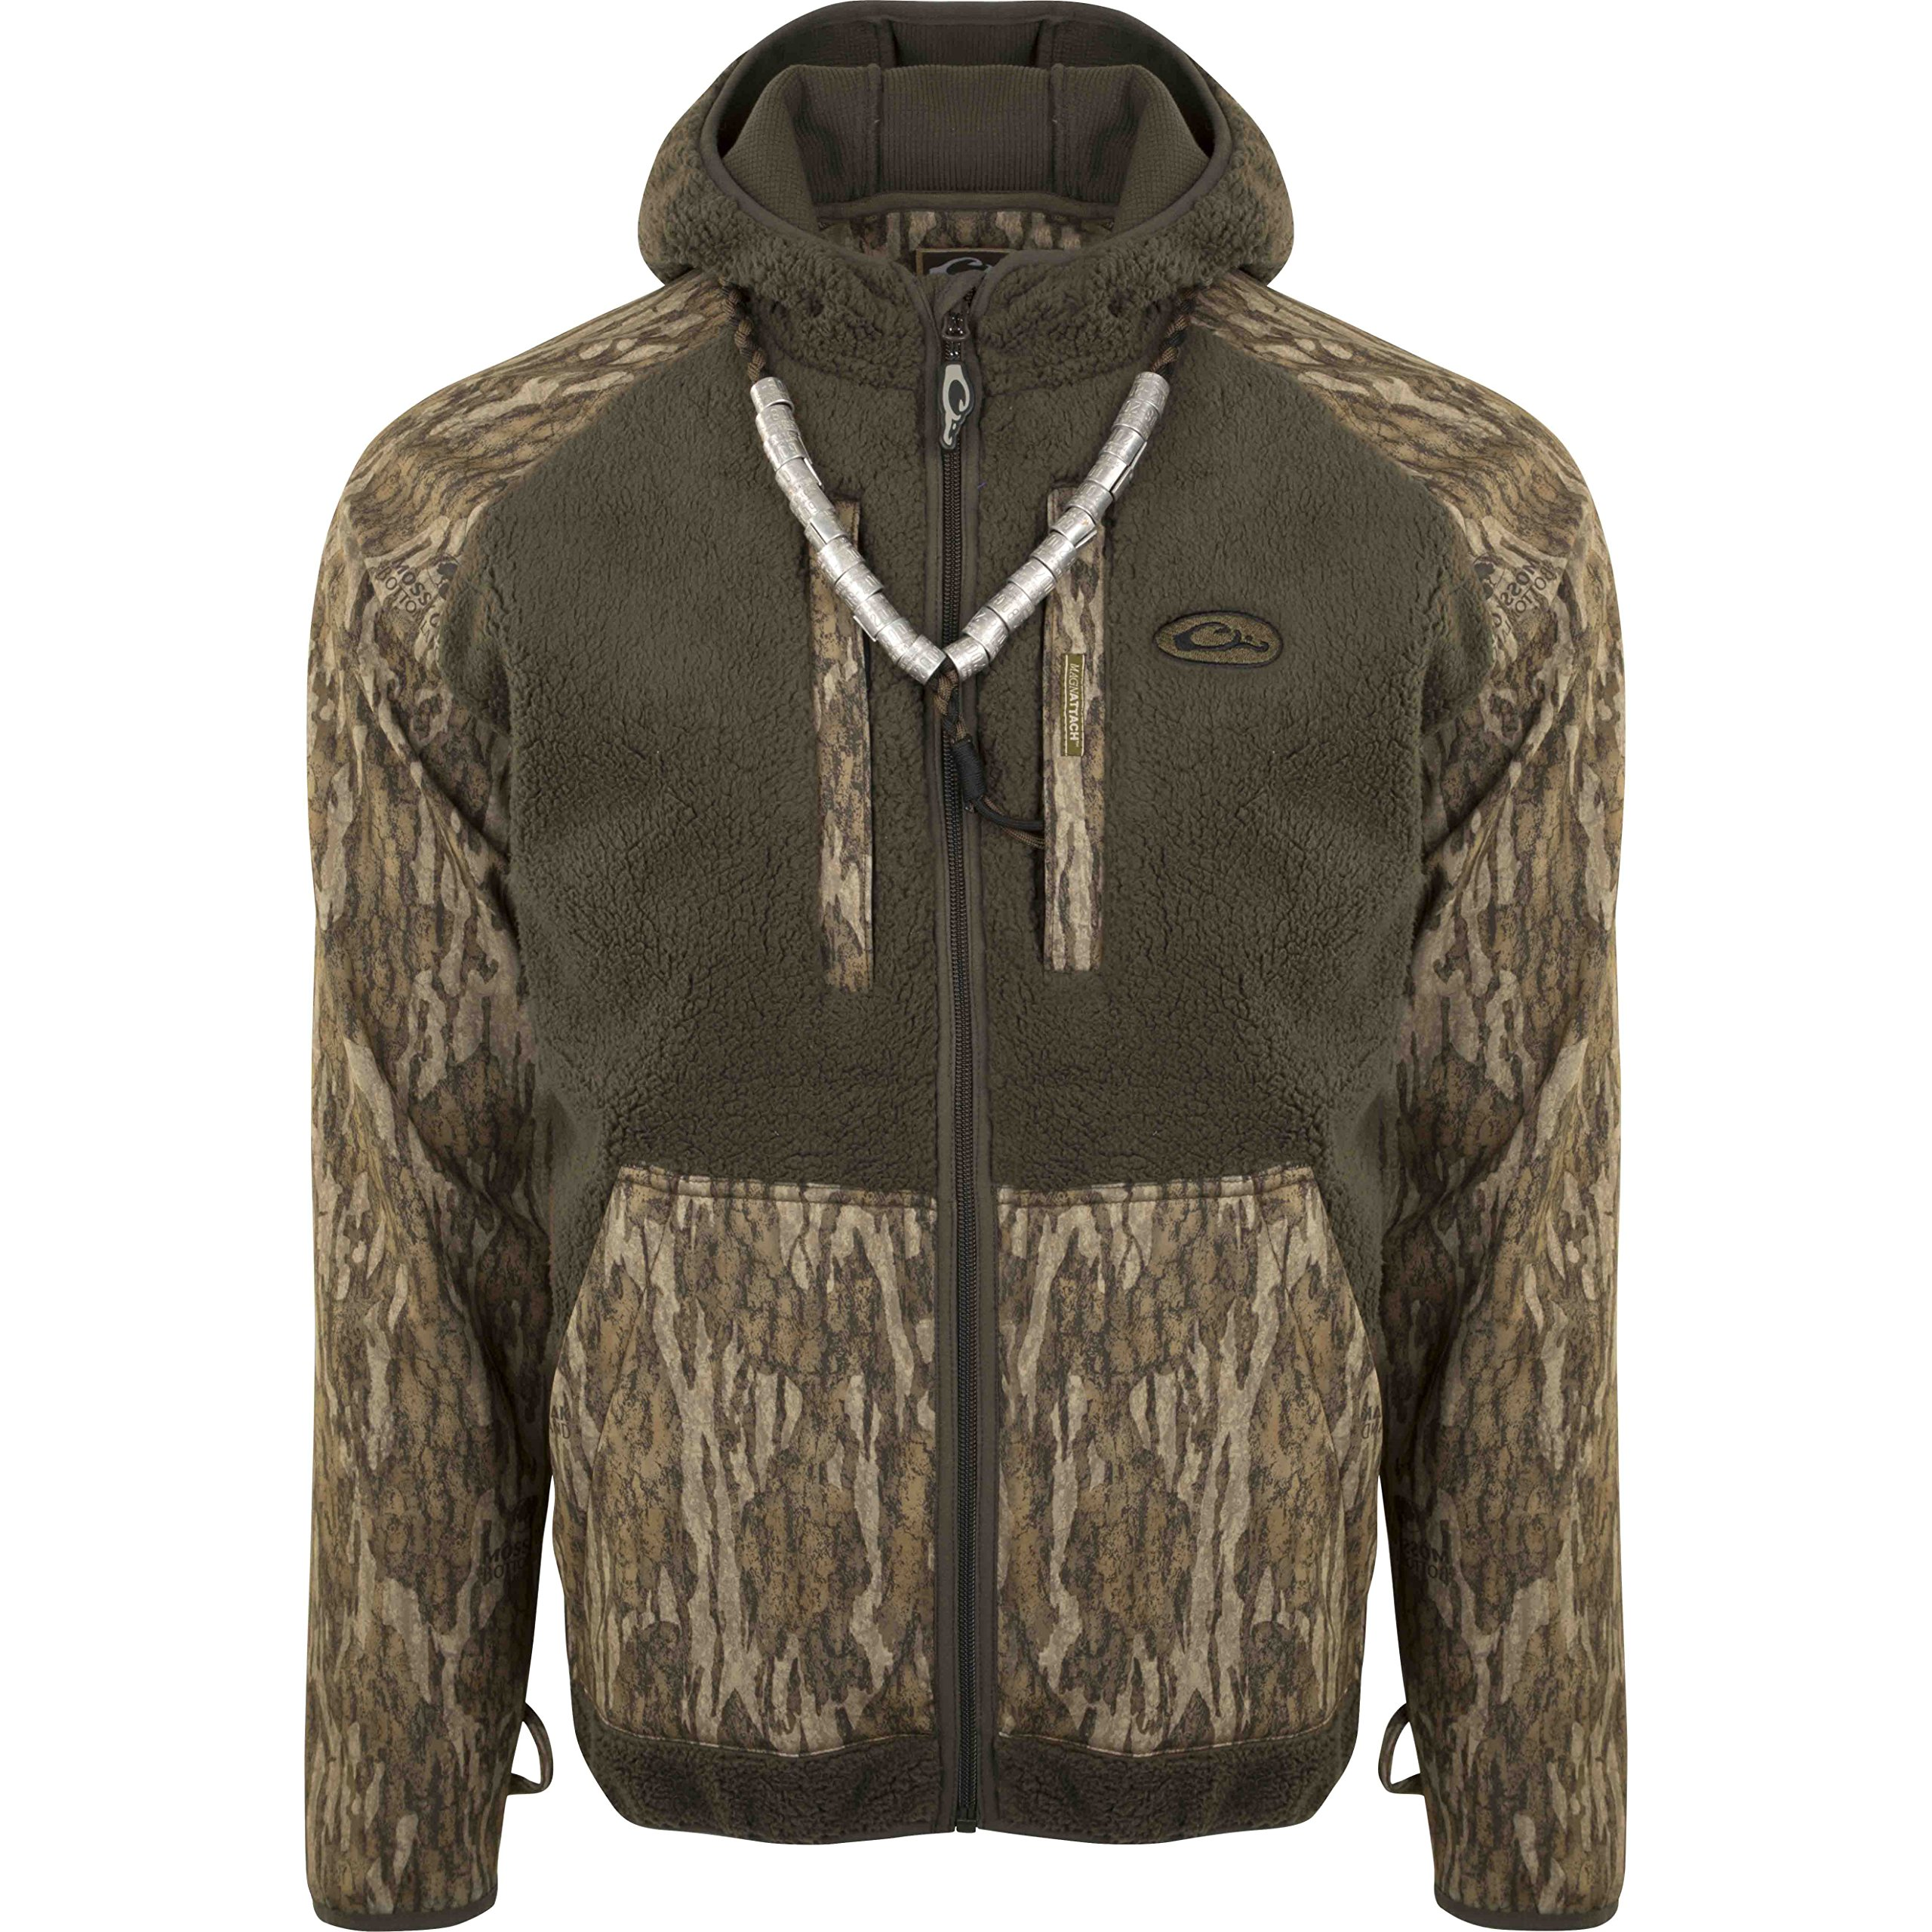 Drake MST Sherpa Fleece Hybrid Liner Full Zip with Hood (Bottomland, Small)